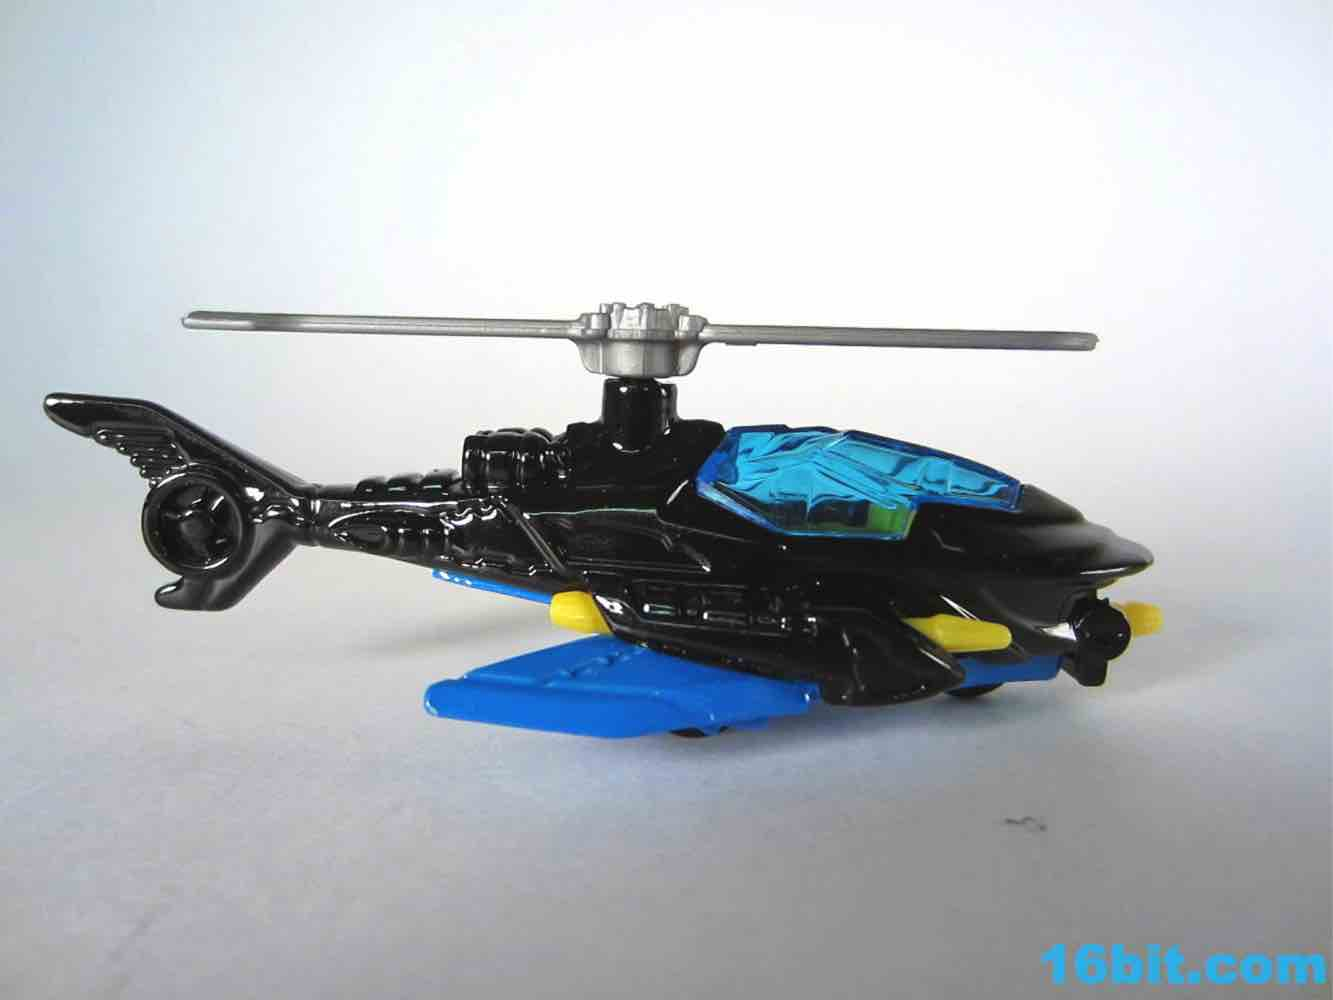 blade helicopters with 130906 Hot Wheels Batcopter Batman on Cardboard Airplane also K1 in addition Outdoor Helicopter additionally Blade Cx2 Rtf Electric Coaxial Micro Helicopter Eflh1250 further Nano Qx.